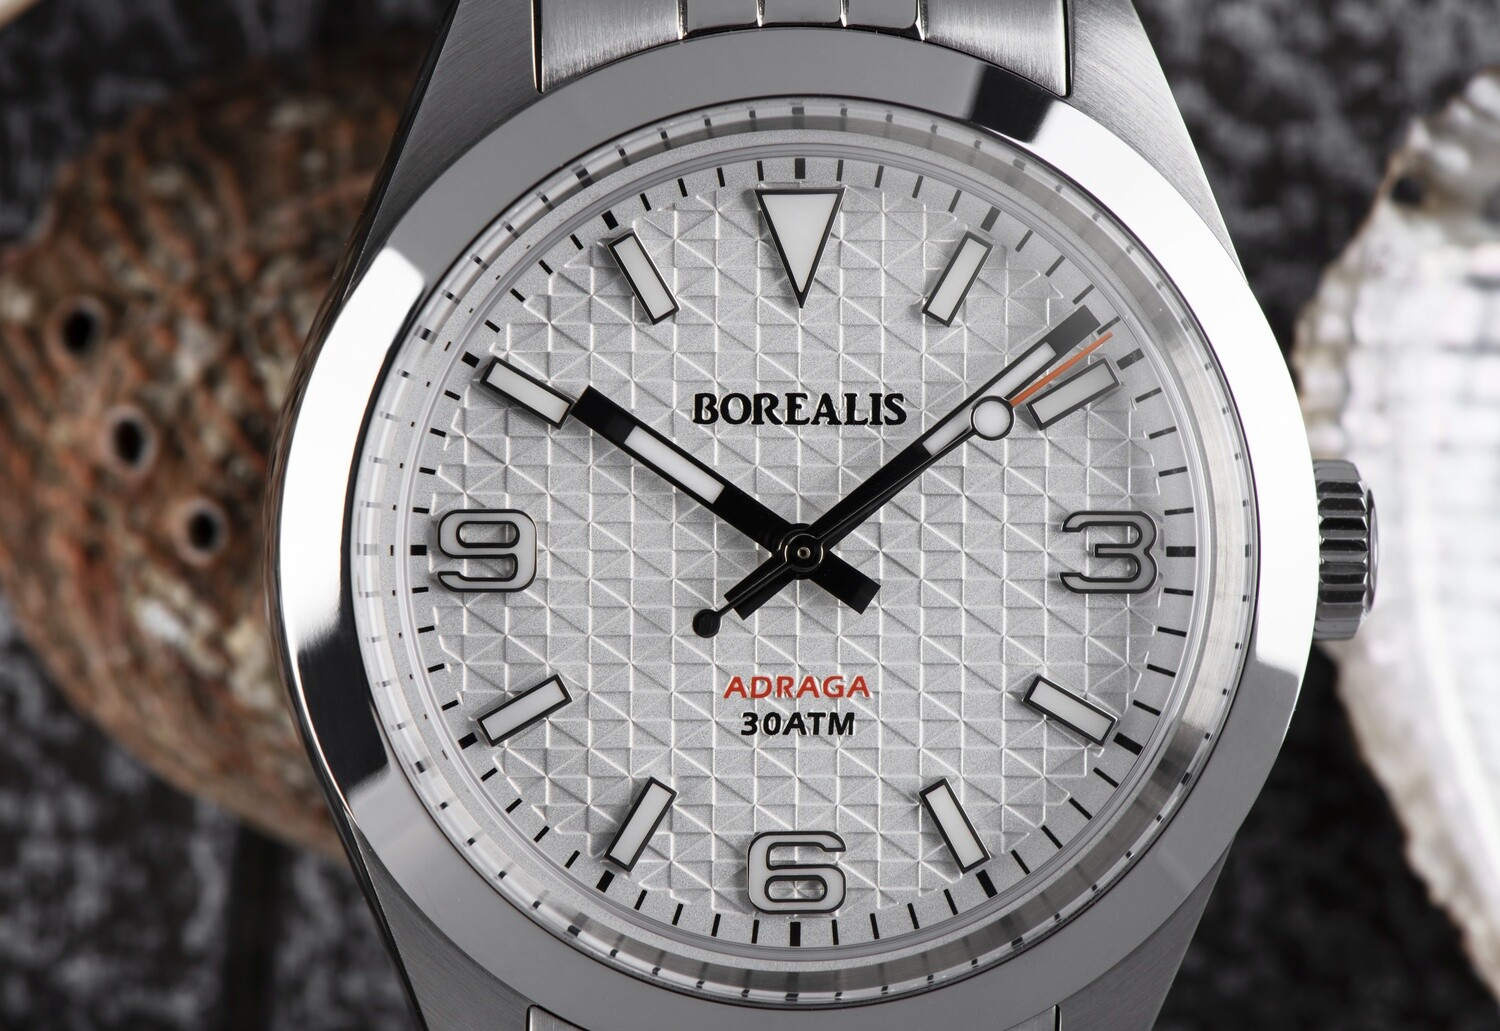 Borealis Adraga Stainless Steel Miyota 90S5 white dial with flag pattern commando hands no Date BGW9 lume